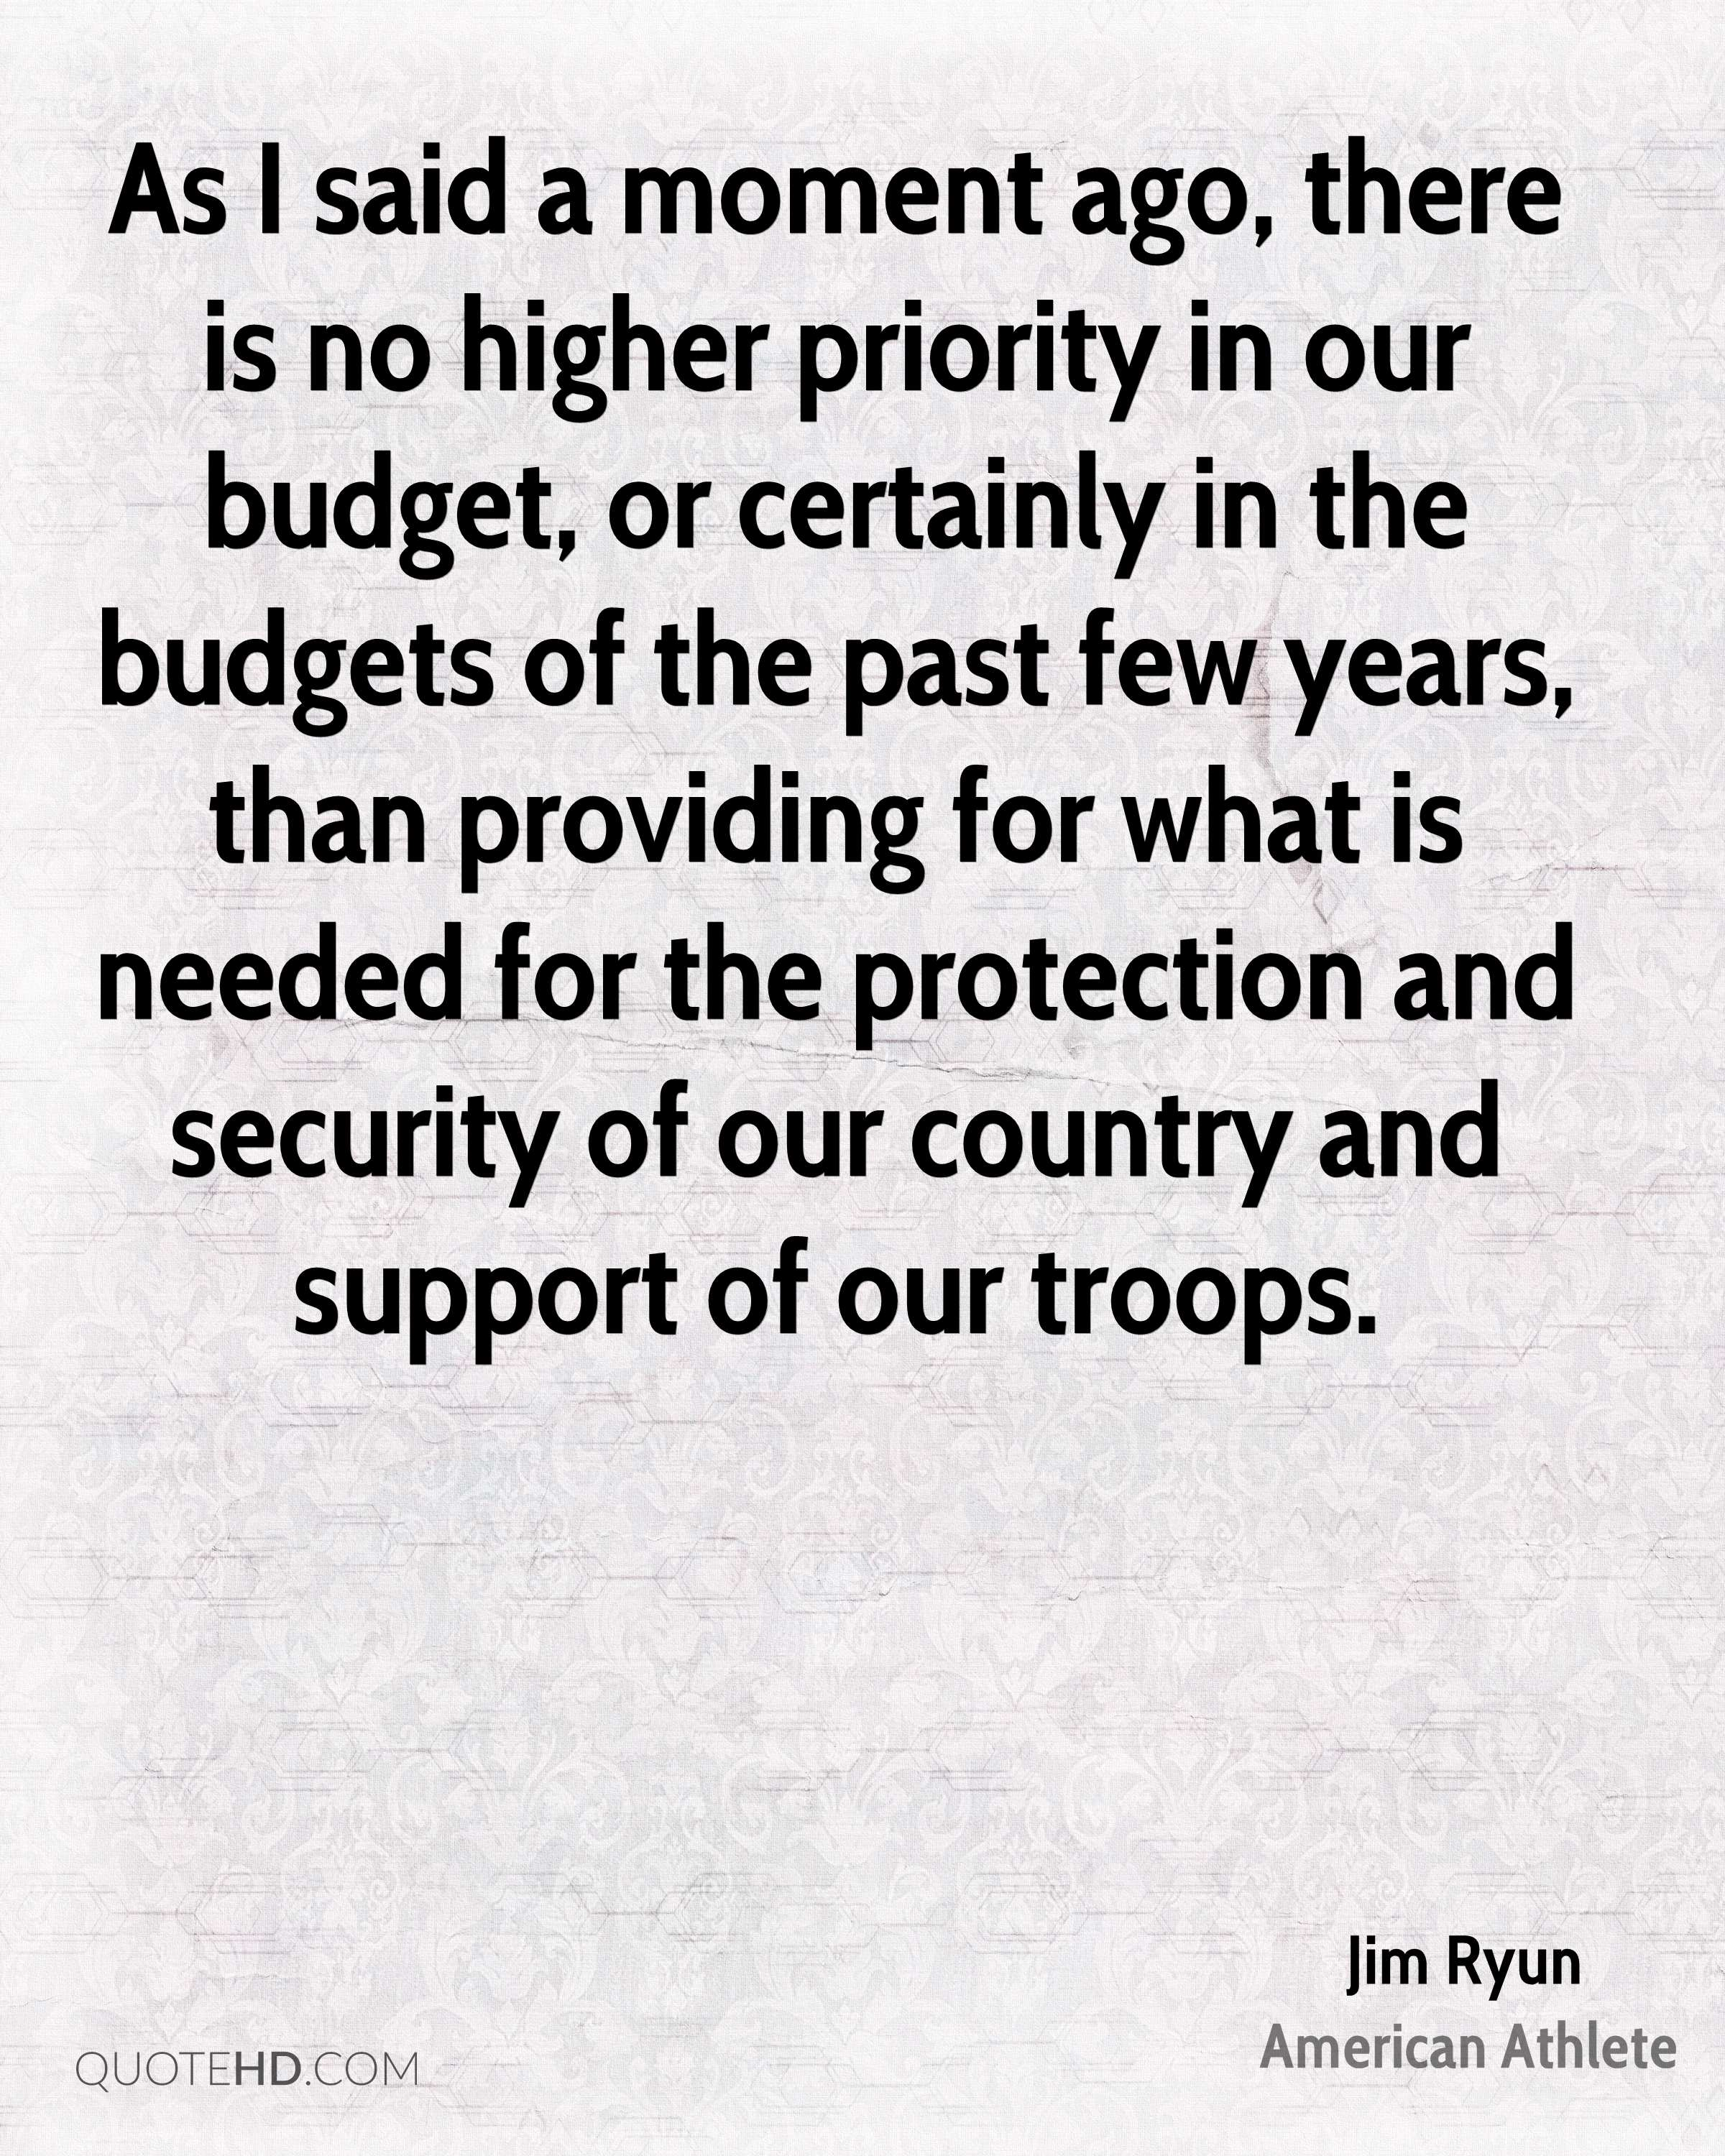 As I said a moment ago, there is no higher priority in our budget, or certainly in the budgets of the past few years, than providing for what is needed for the protection and security of our country and support of our troops.